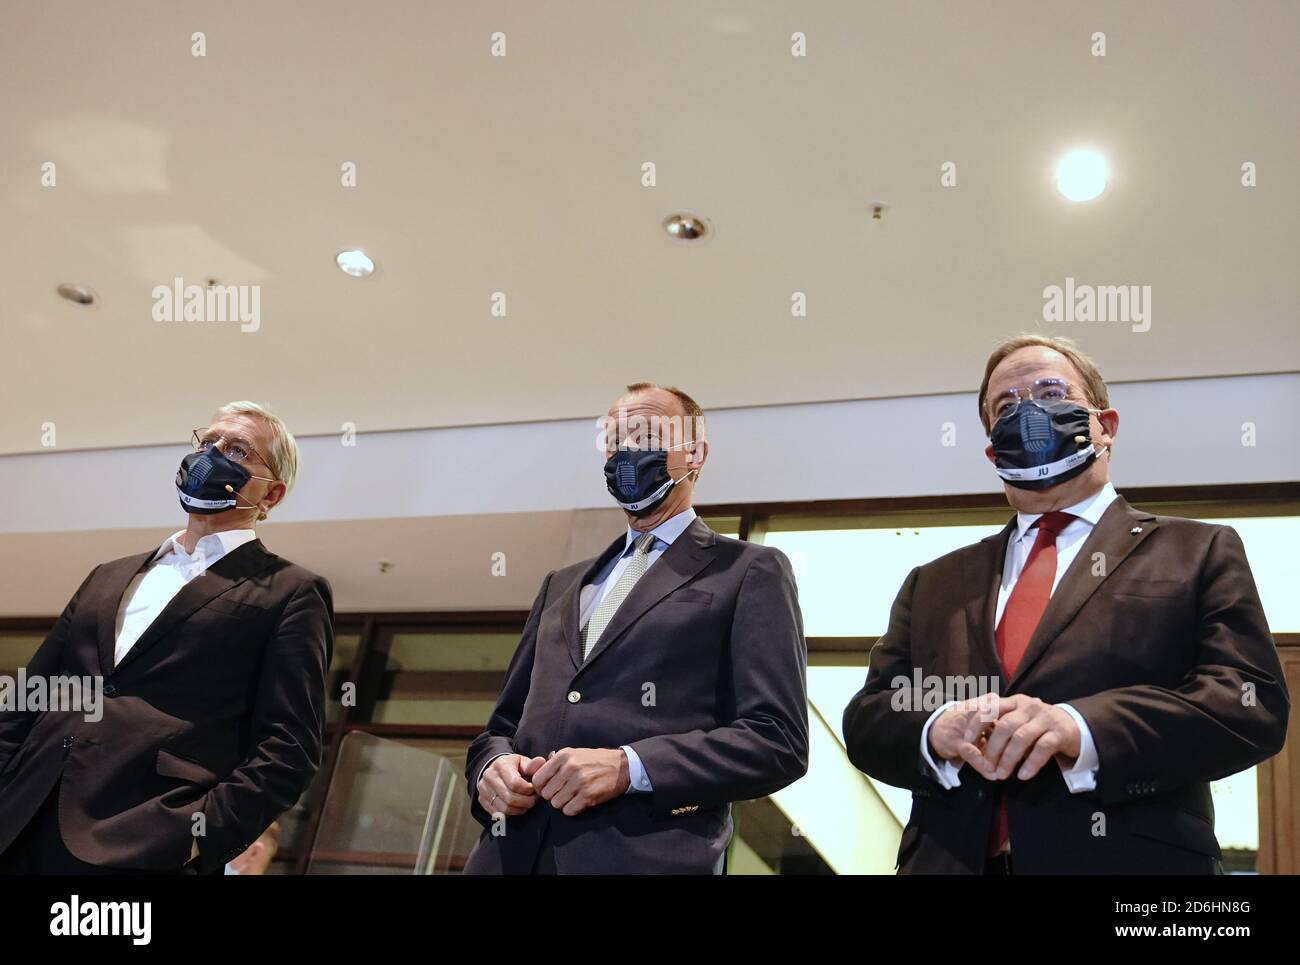 Germany L To R High Resolution Stock Photography And Images Page 24 Alamy